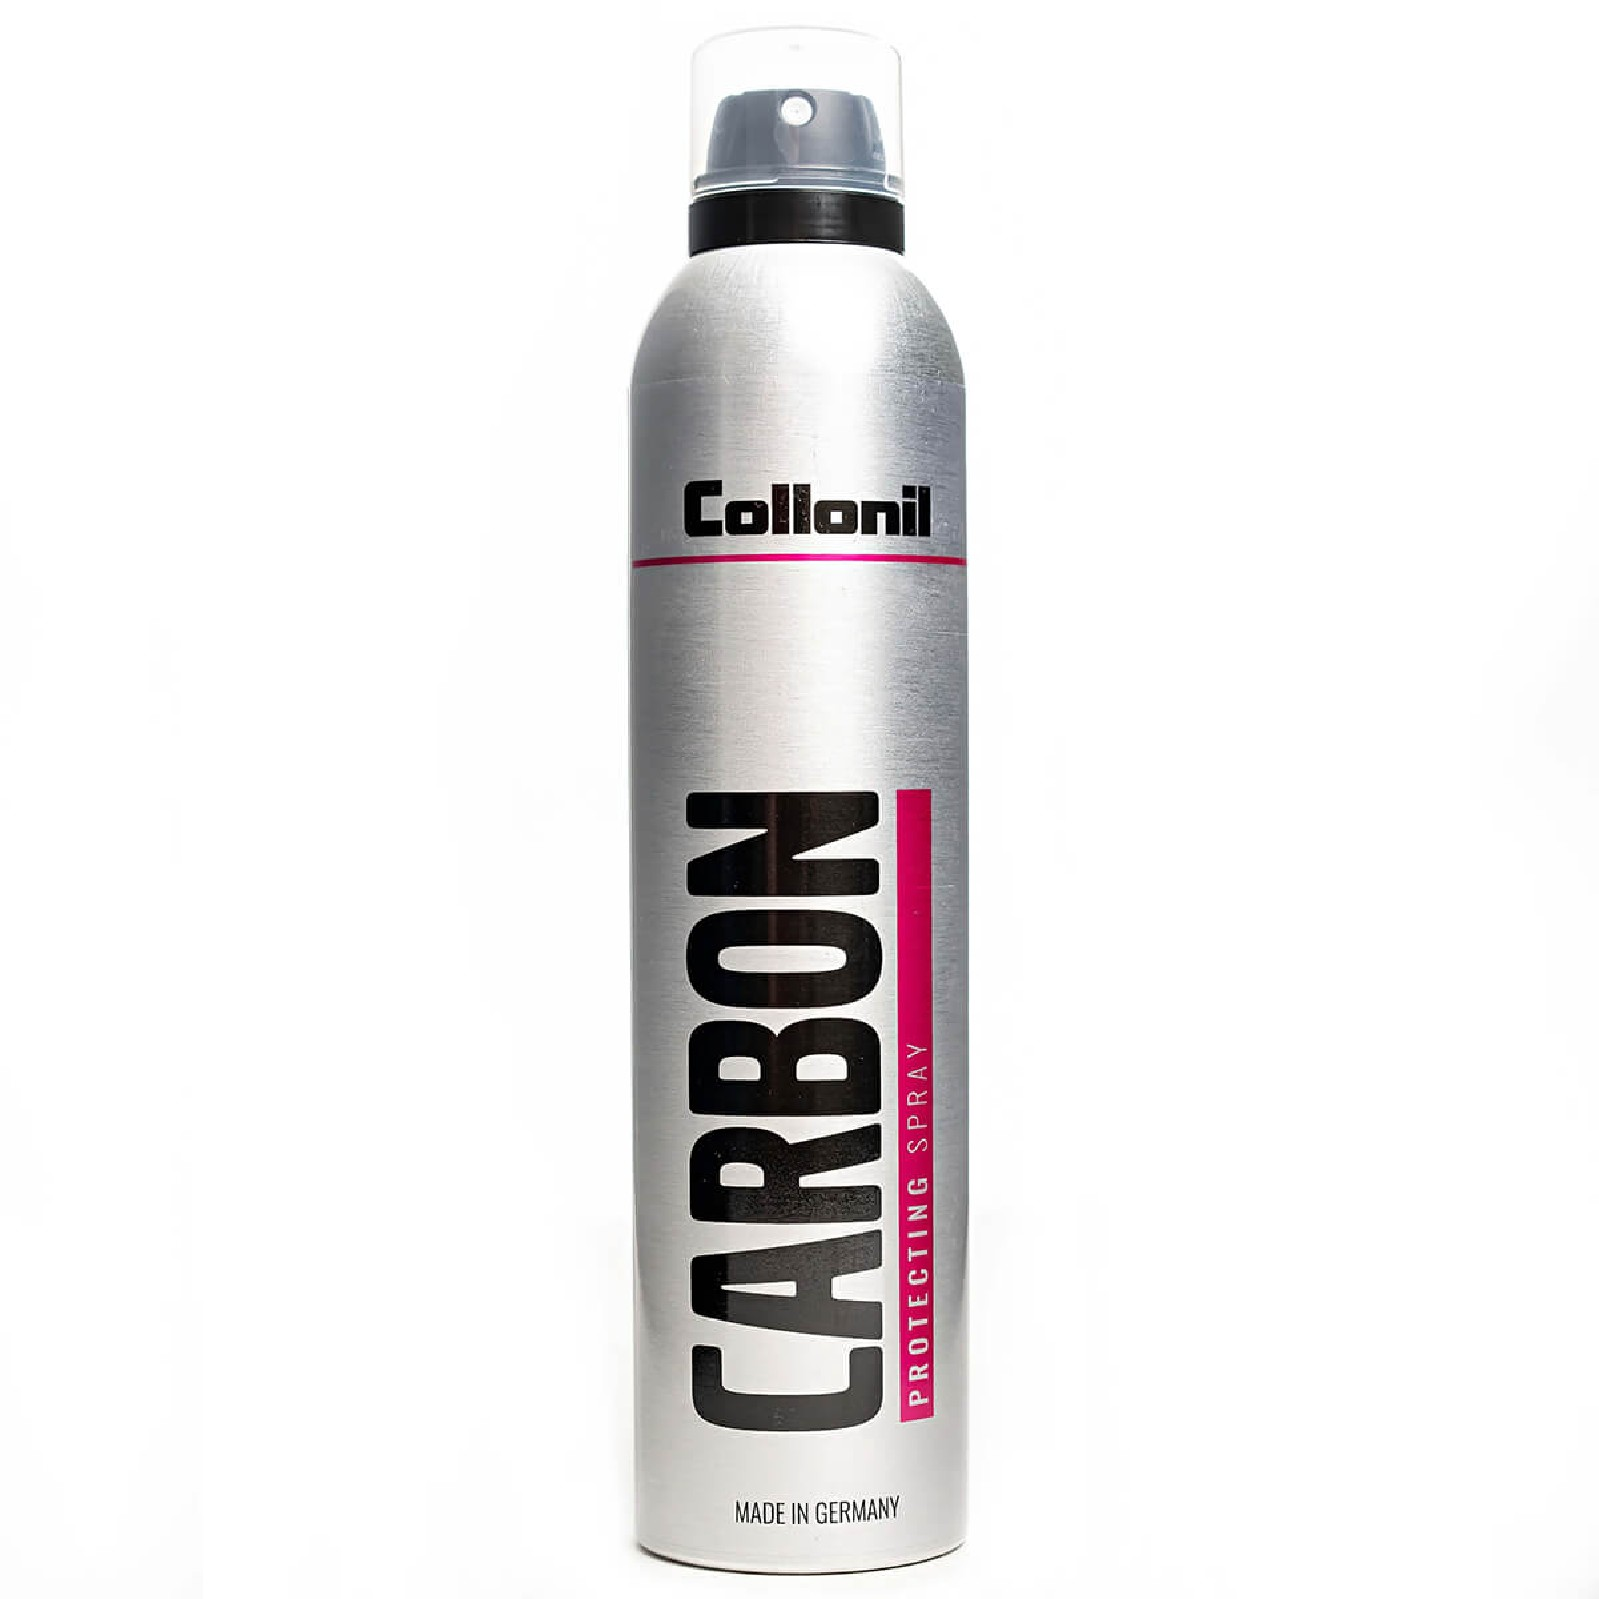 Collonil Carbon Protecting Spray 300 ml